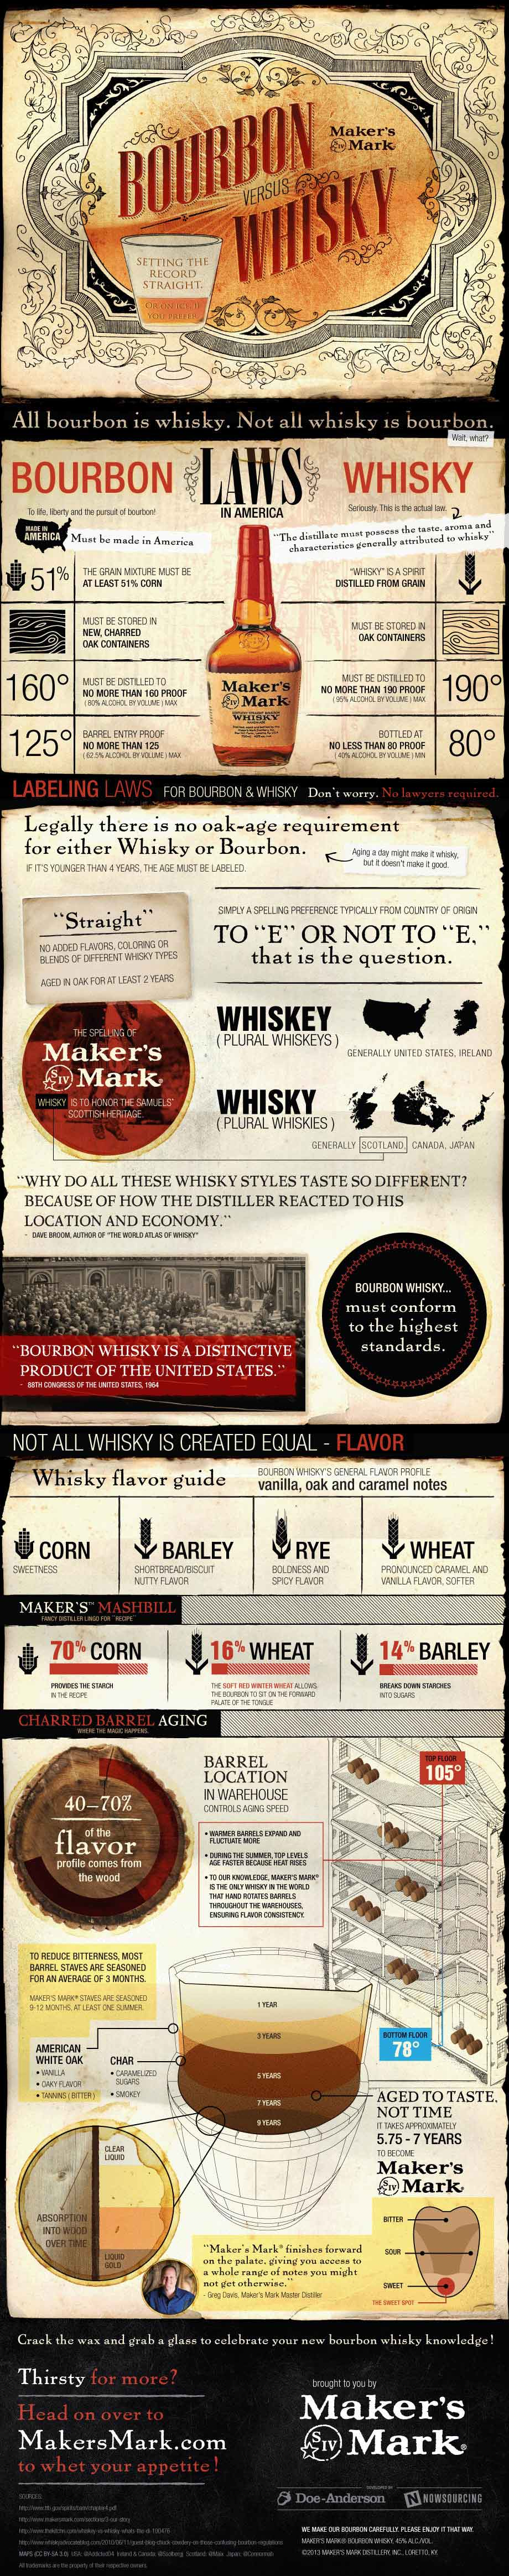 Did you know? All bourbon is whisky, but not all whisky is bourbon.